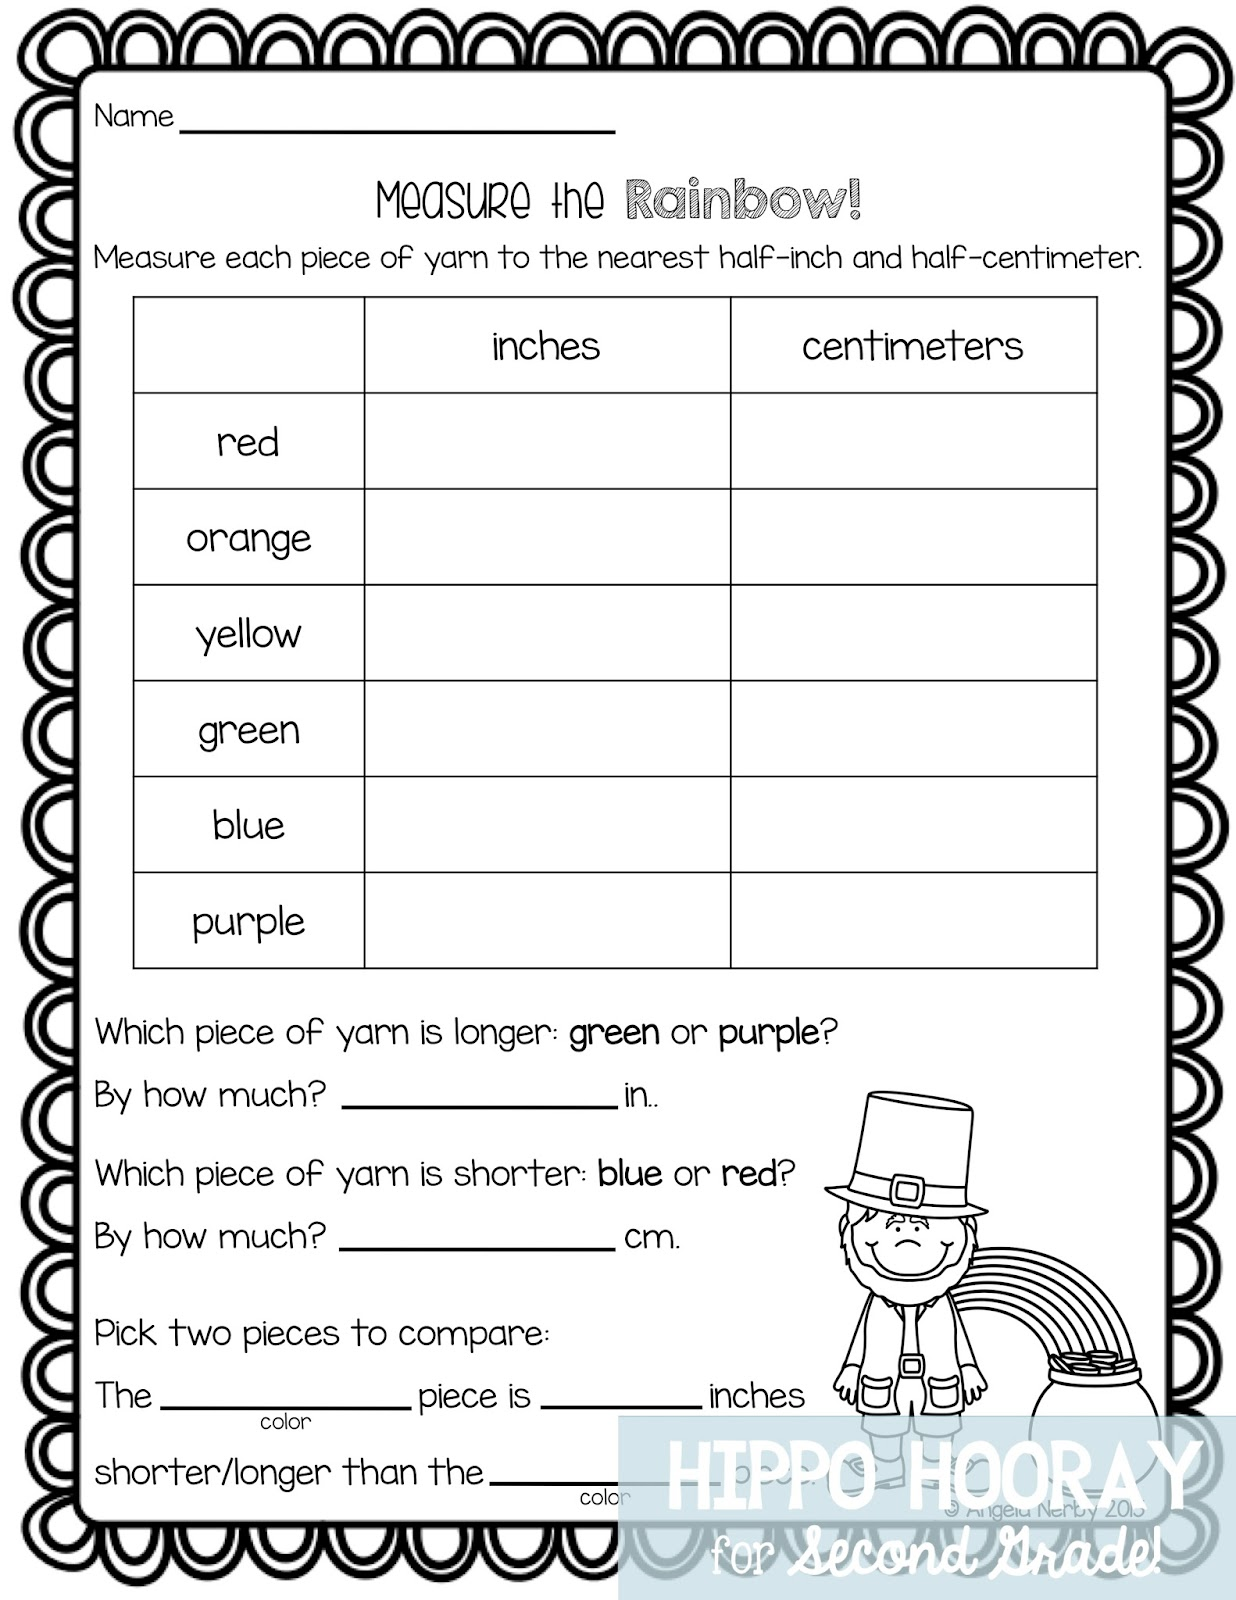 worksheet Measure To The Nearest Quarter Inch Worksheet free worksheets library download and print on measurement mania centimeters inches math and